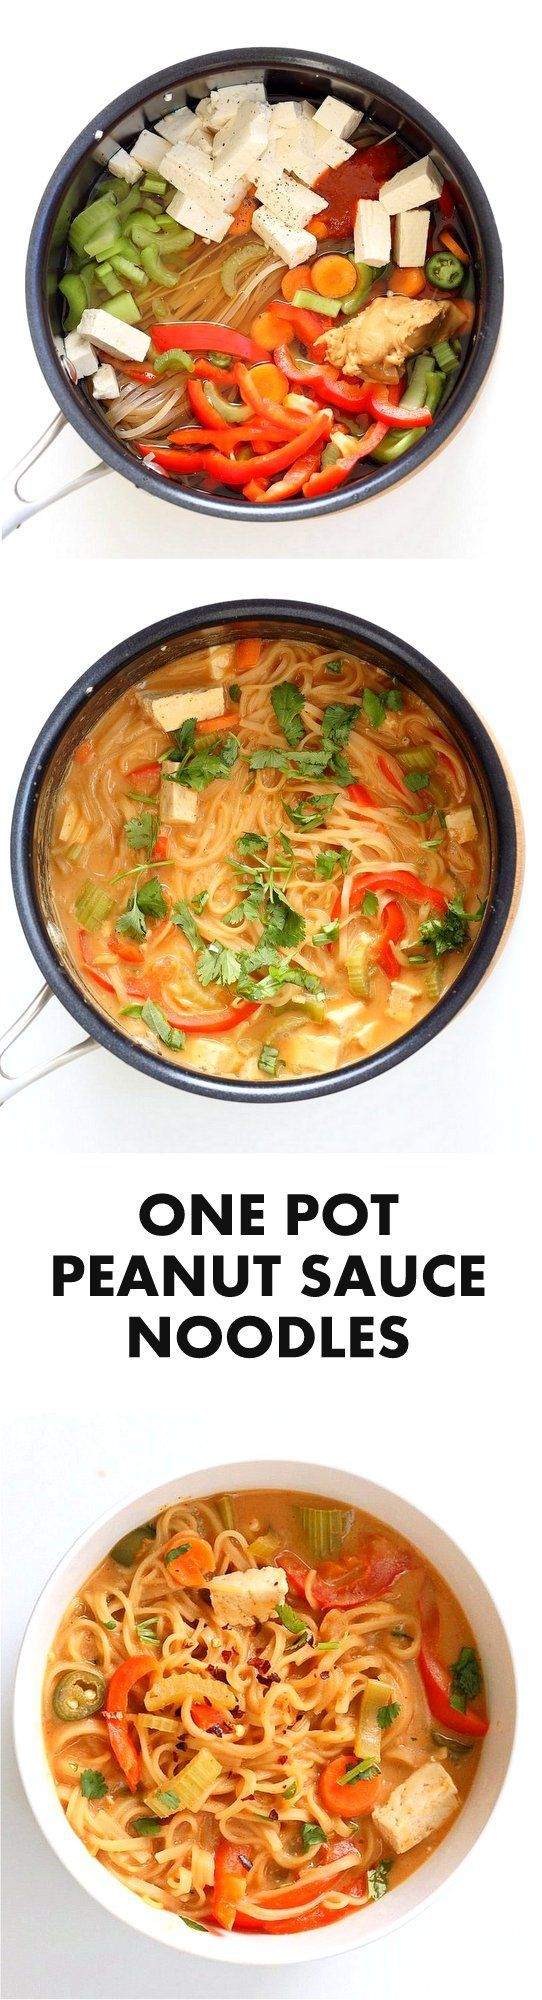 Vegan One Pot Peanut Sauce Noodles: Ready in 20 minutes! Brown rice noodles, veggies, peanut or almond butter, spices, flavors, boil and done. #Easy